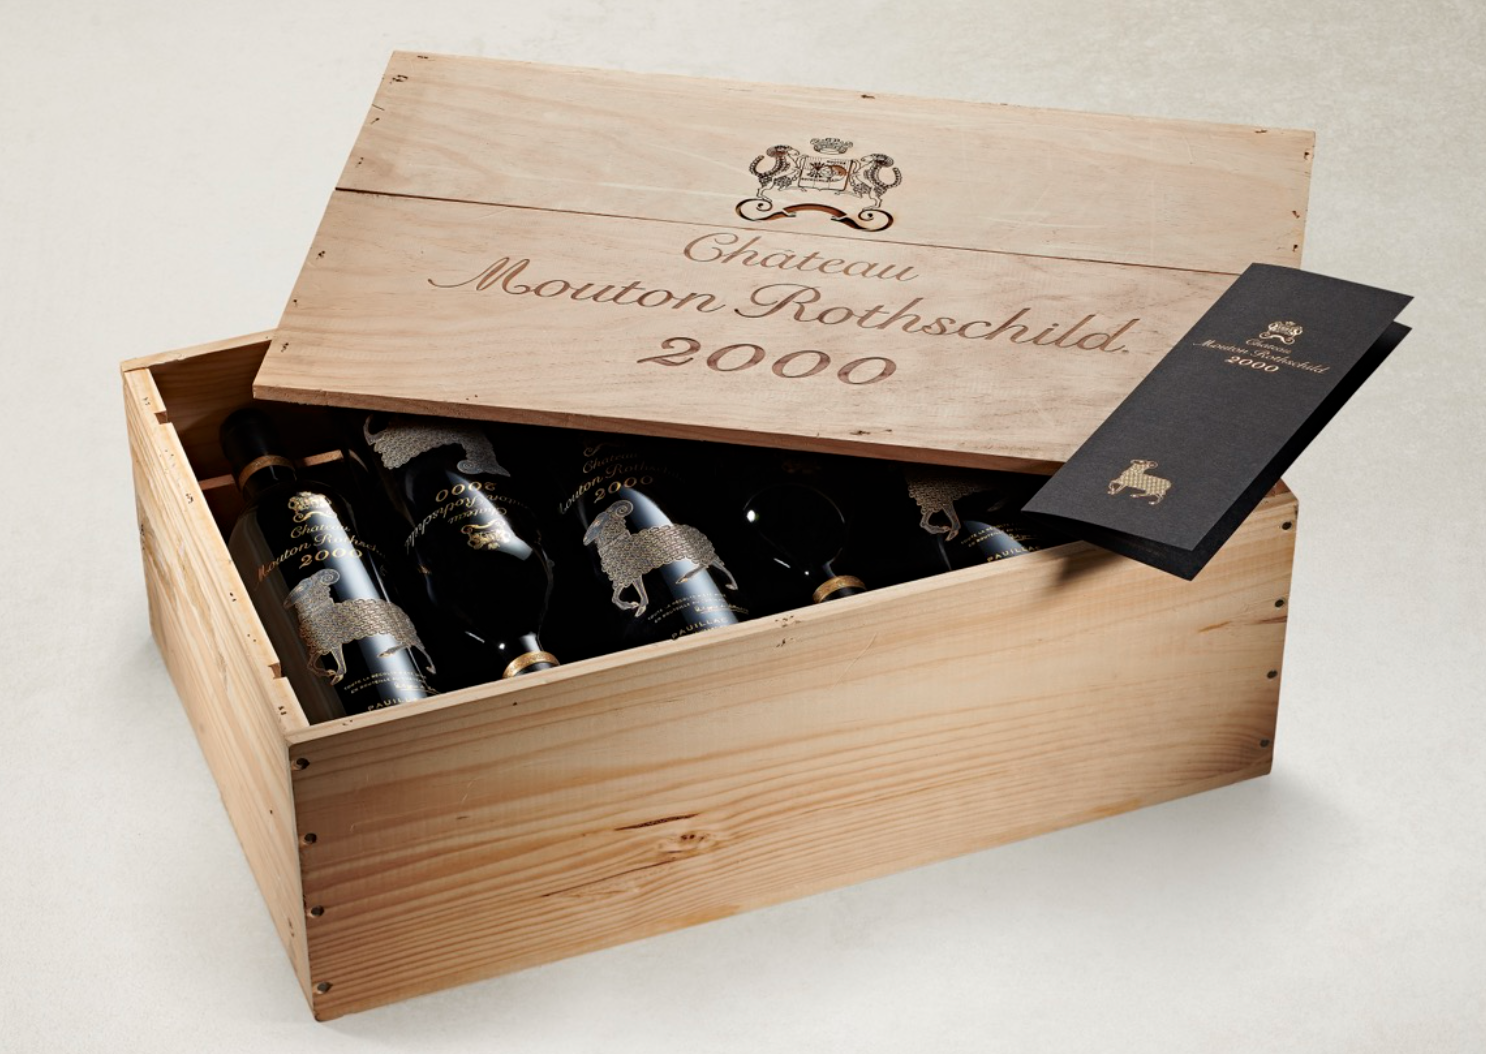 2000 Château Mouton Rothschild (12 bottles)